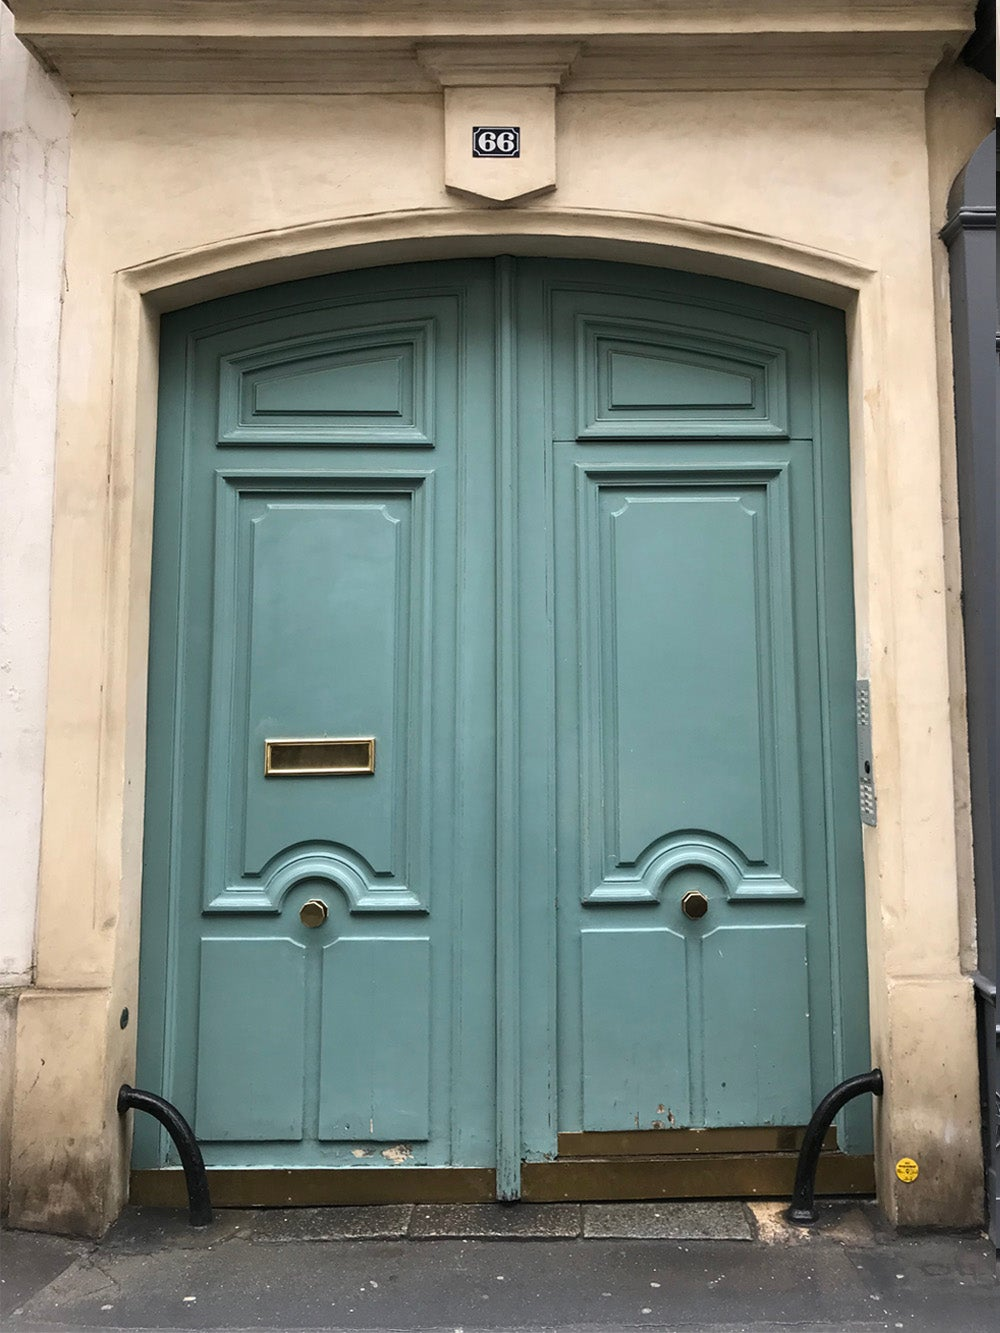 A doorway painted green